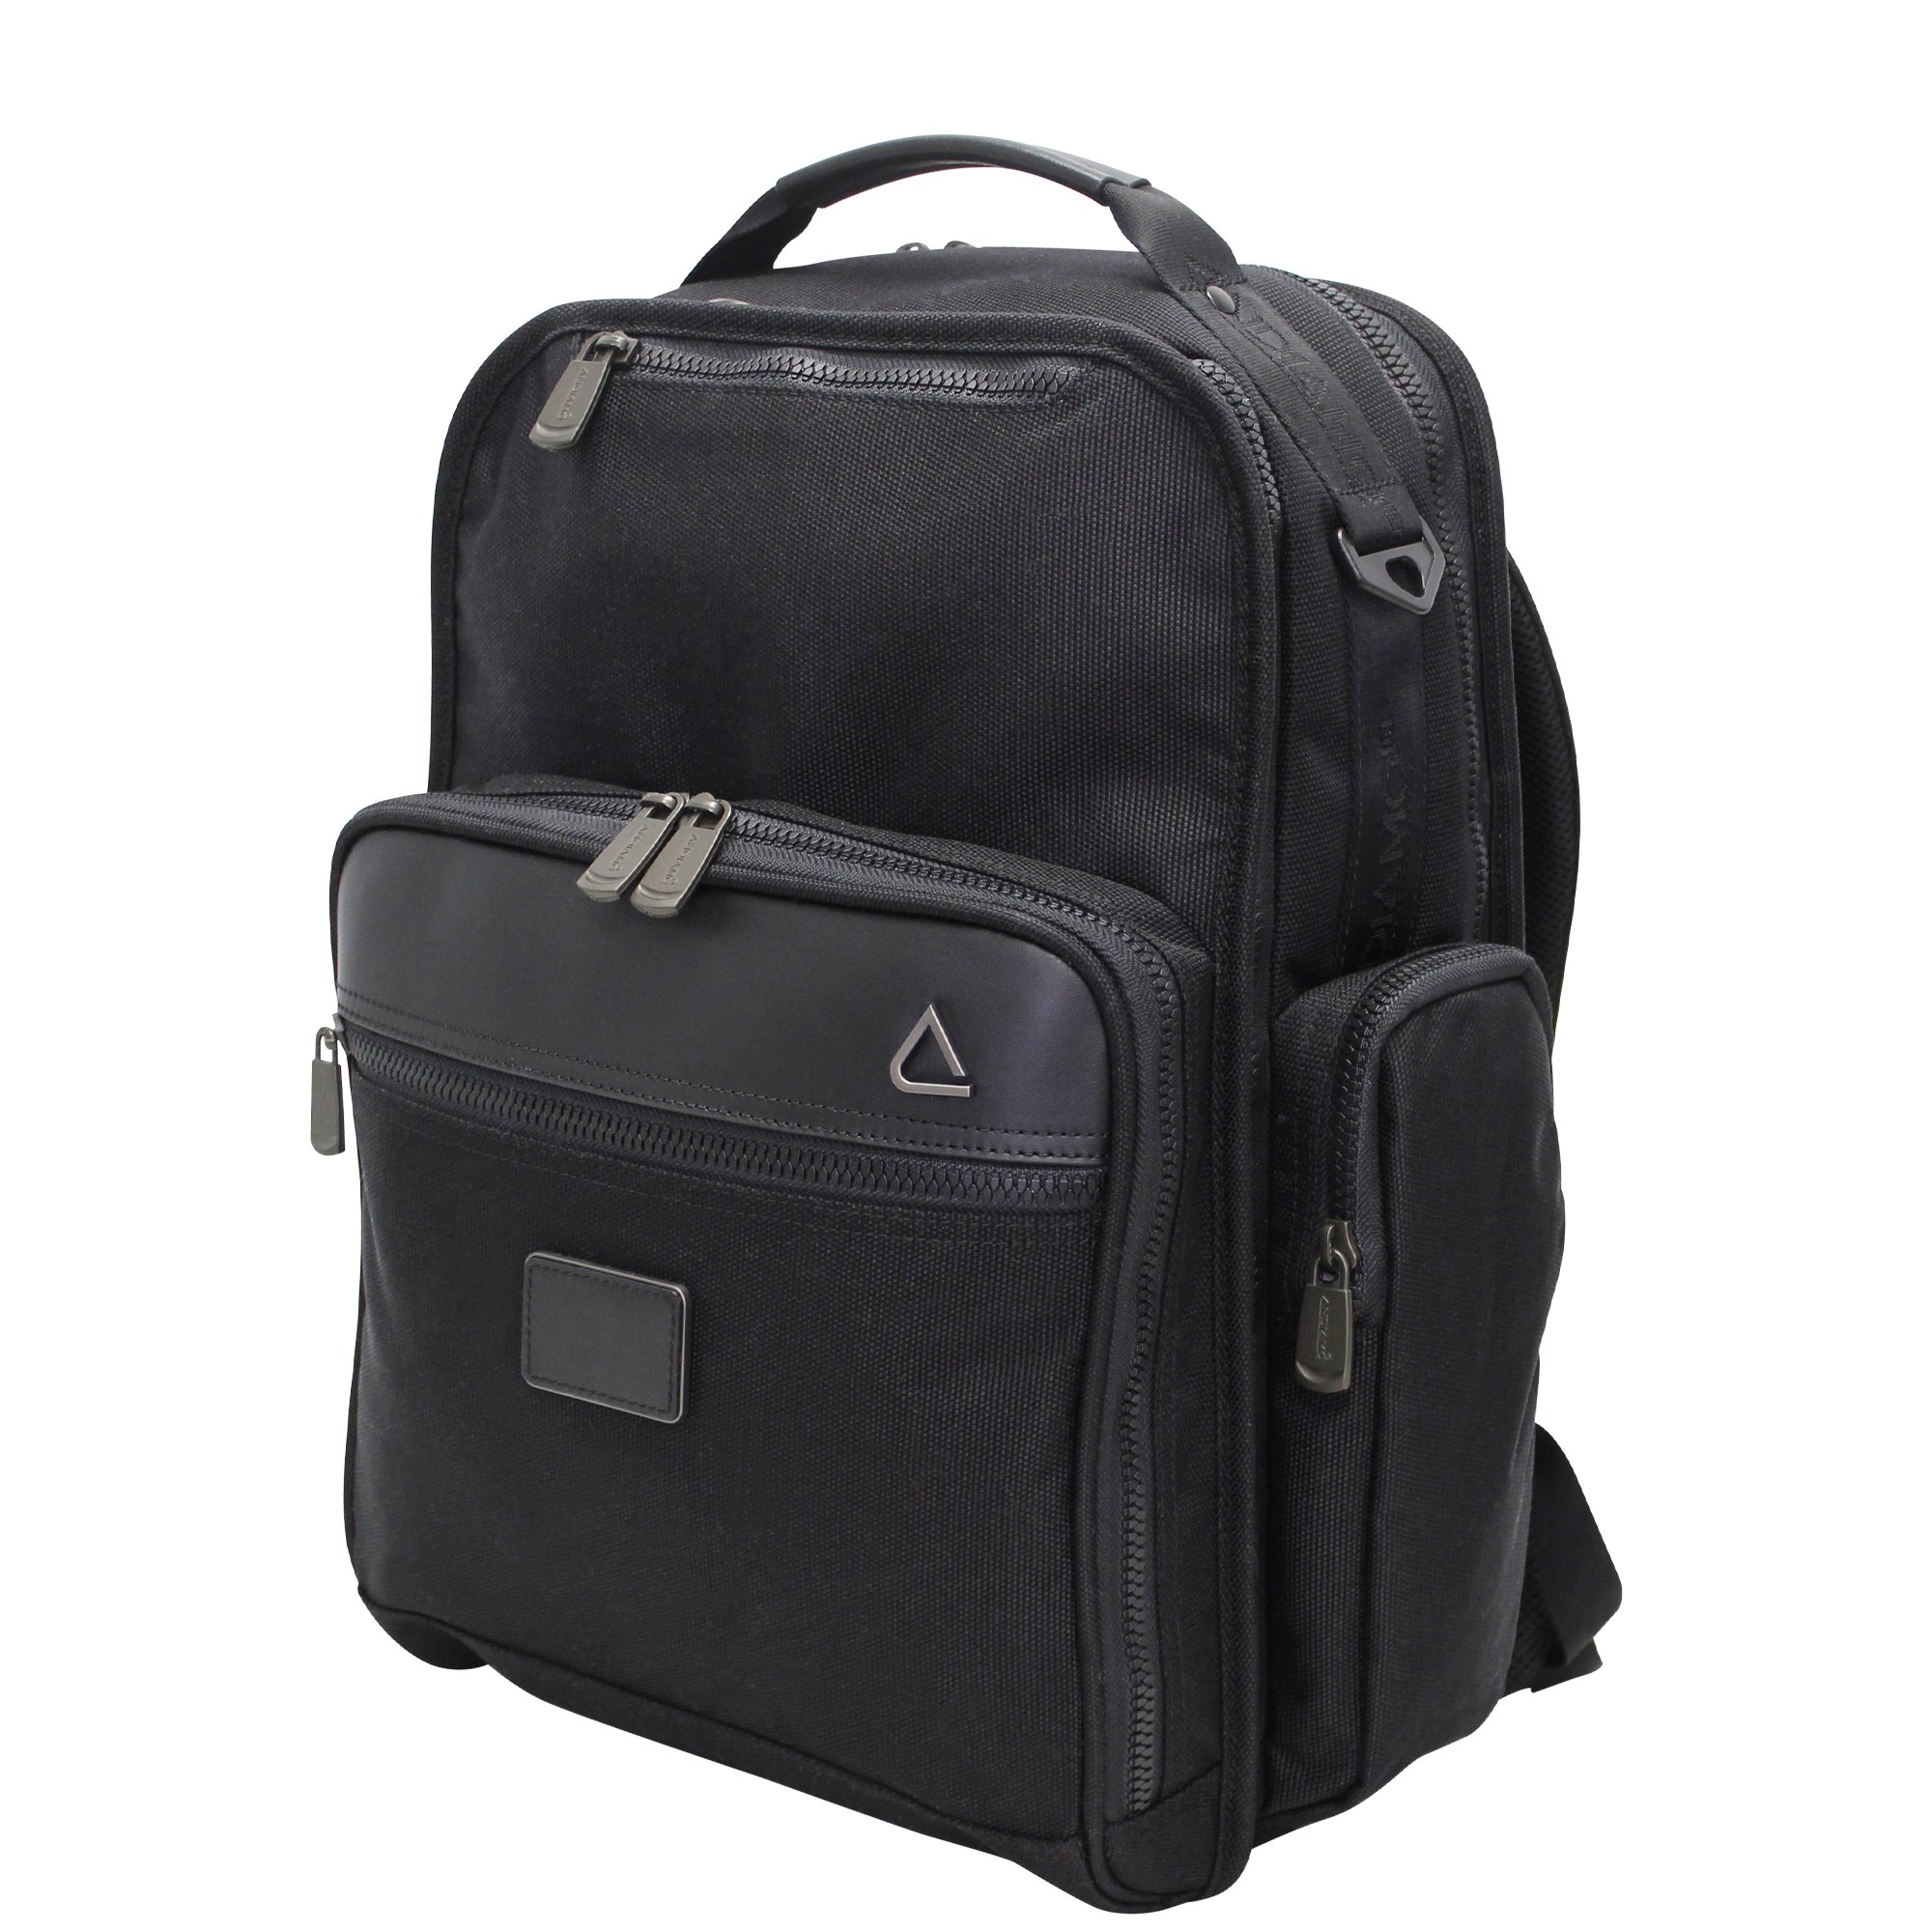 Andiamo Avanti Collection Business Backpack, Midnight Black, One Size